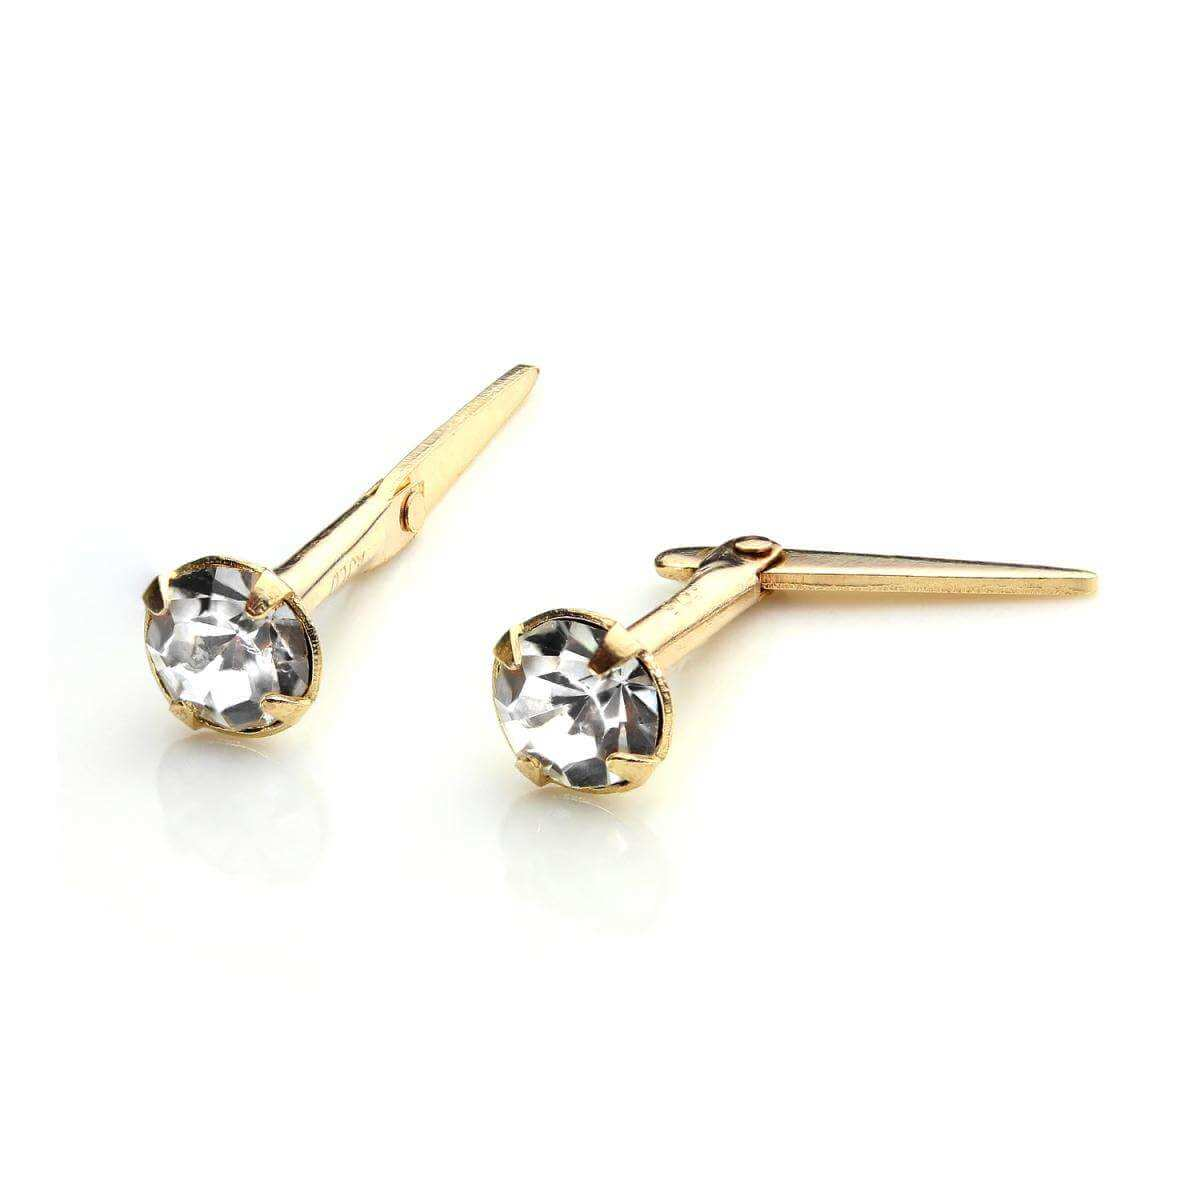 9ct Gold Andralok Stud Earrings with 3mm Clear Crystal